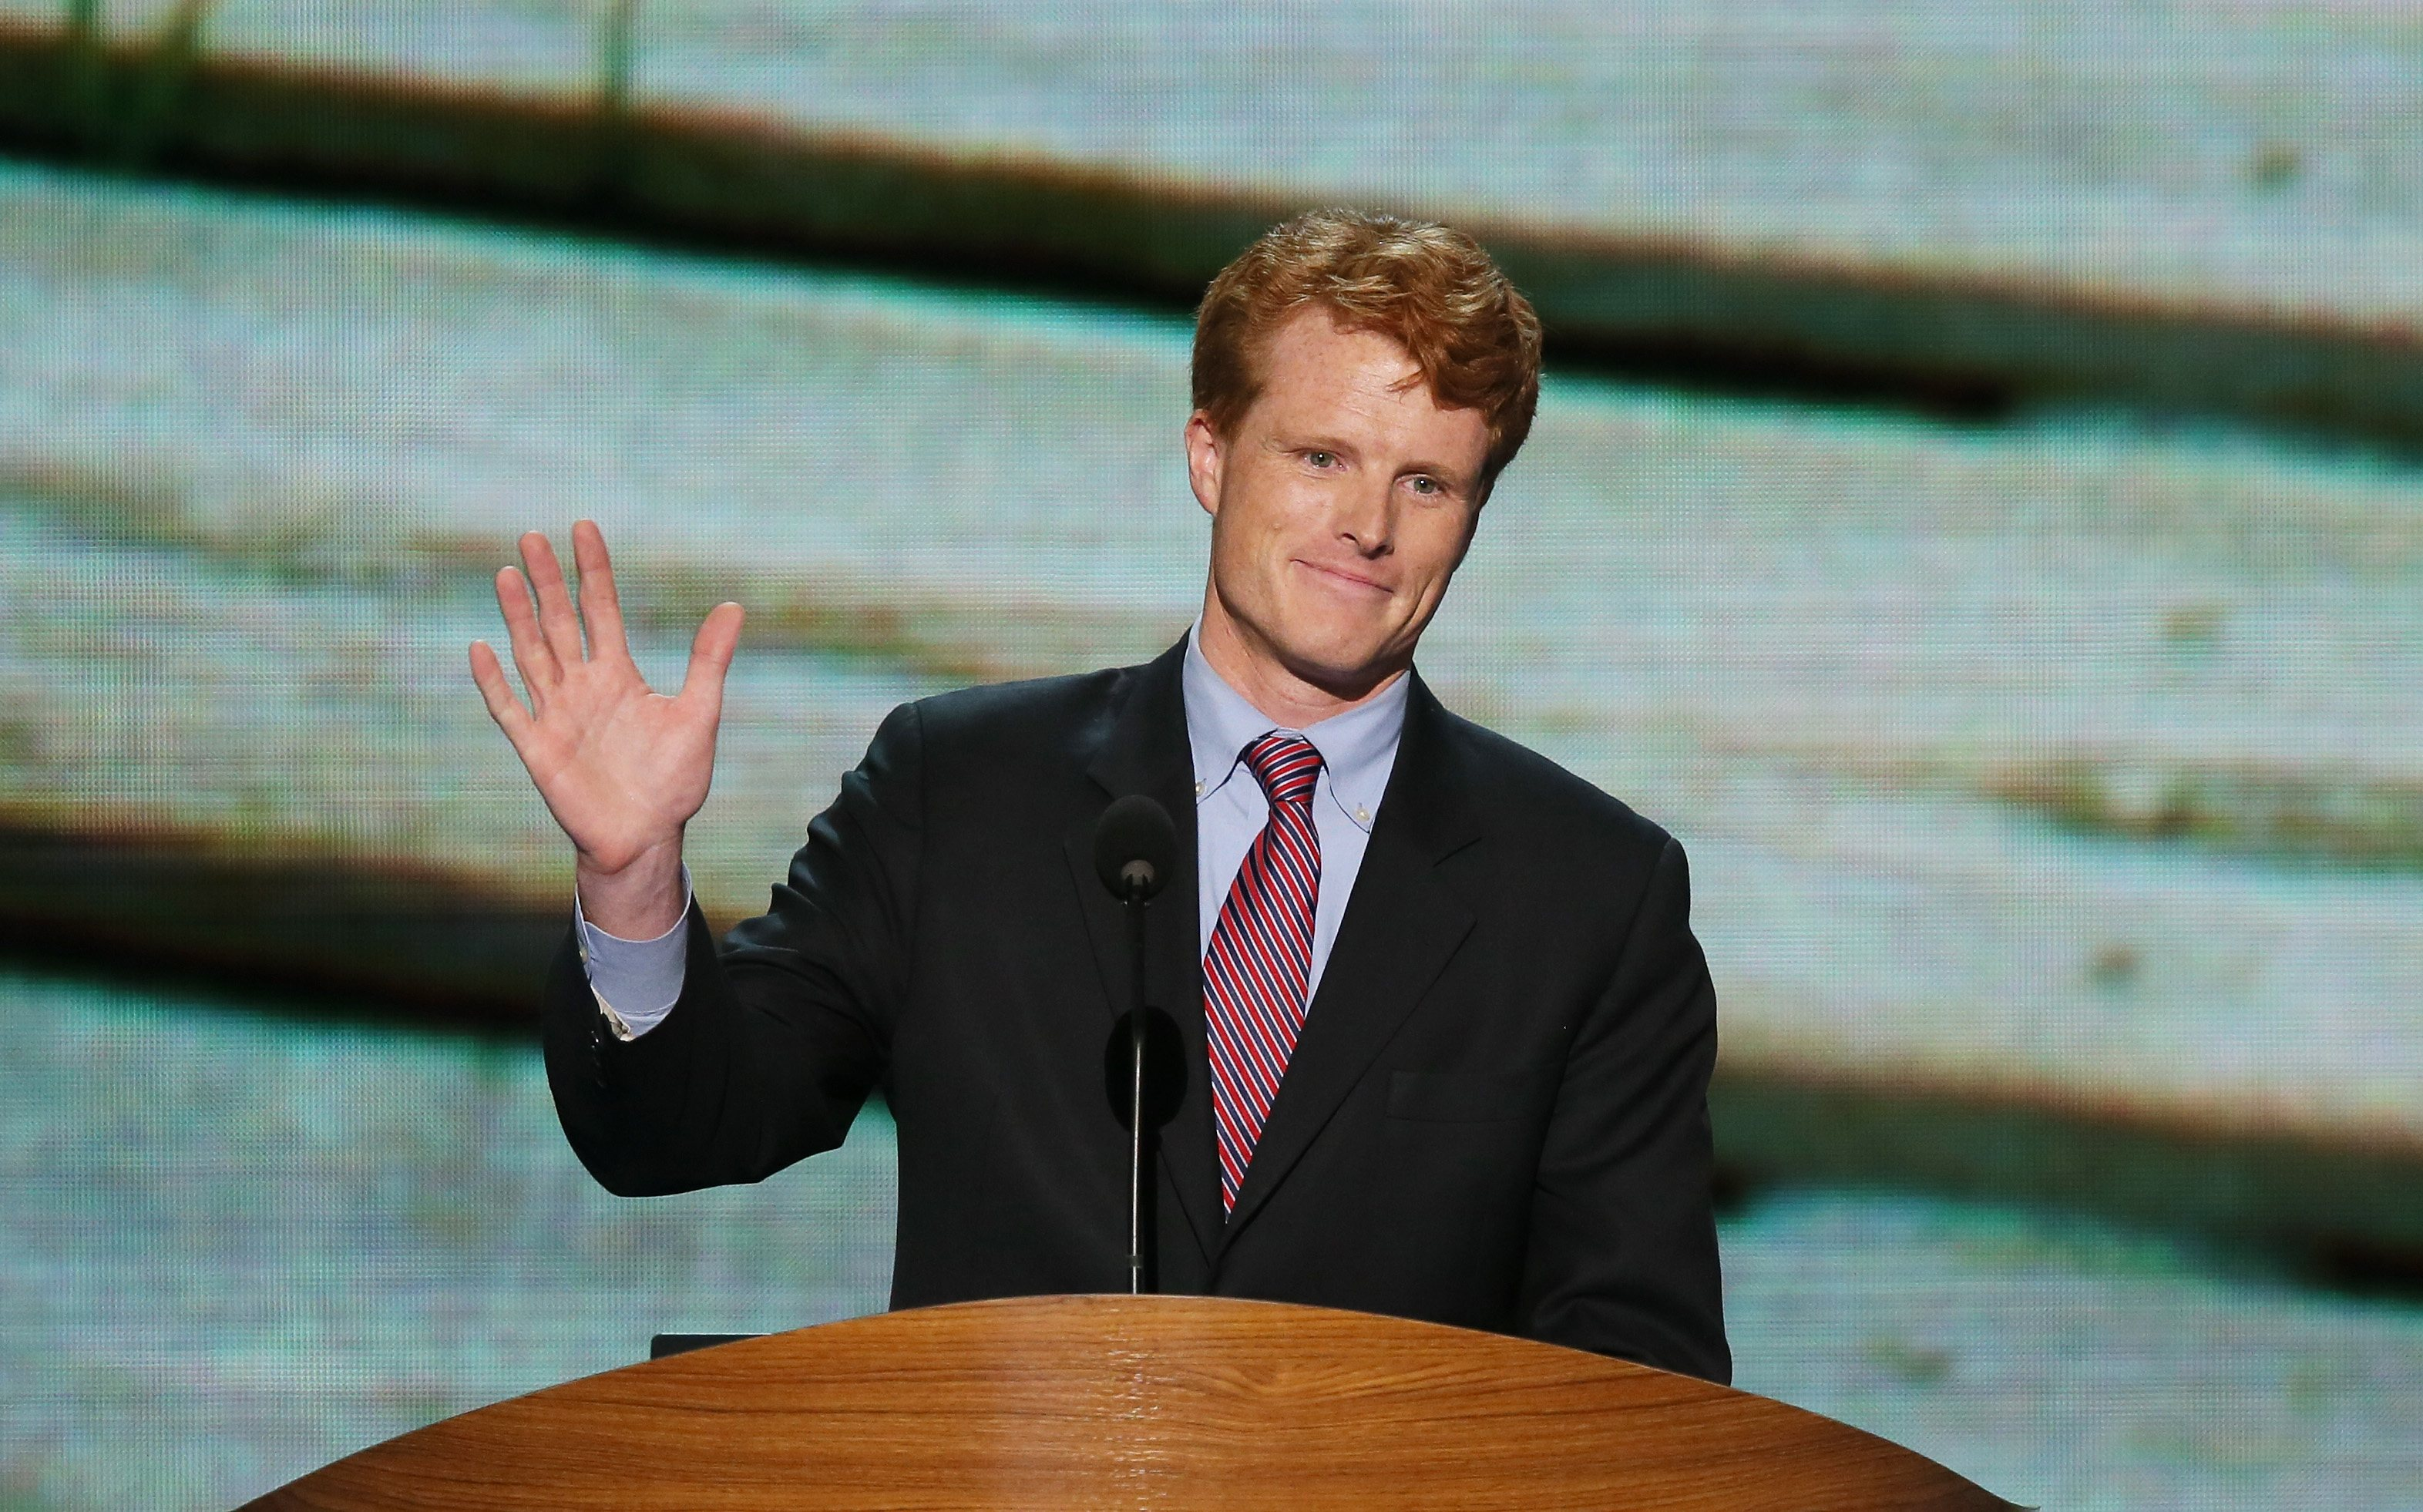 Josephe P. Kennedy III at the Democratic National Convention